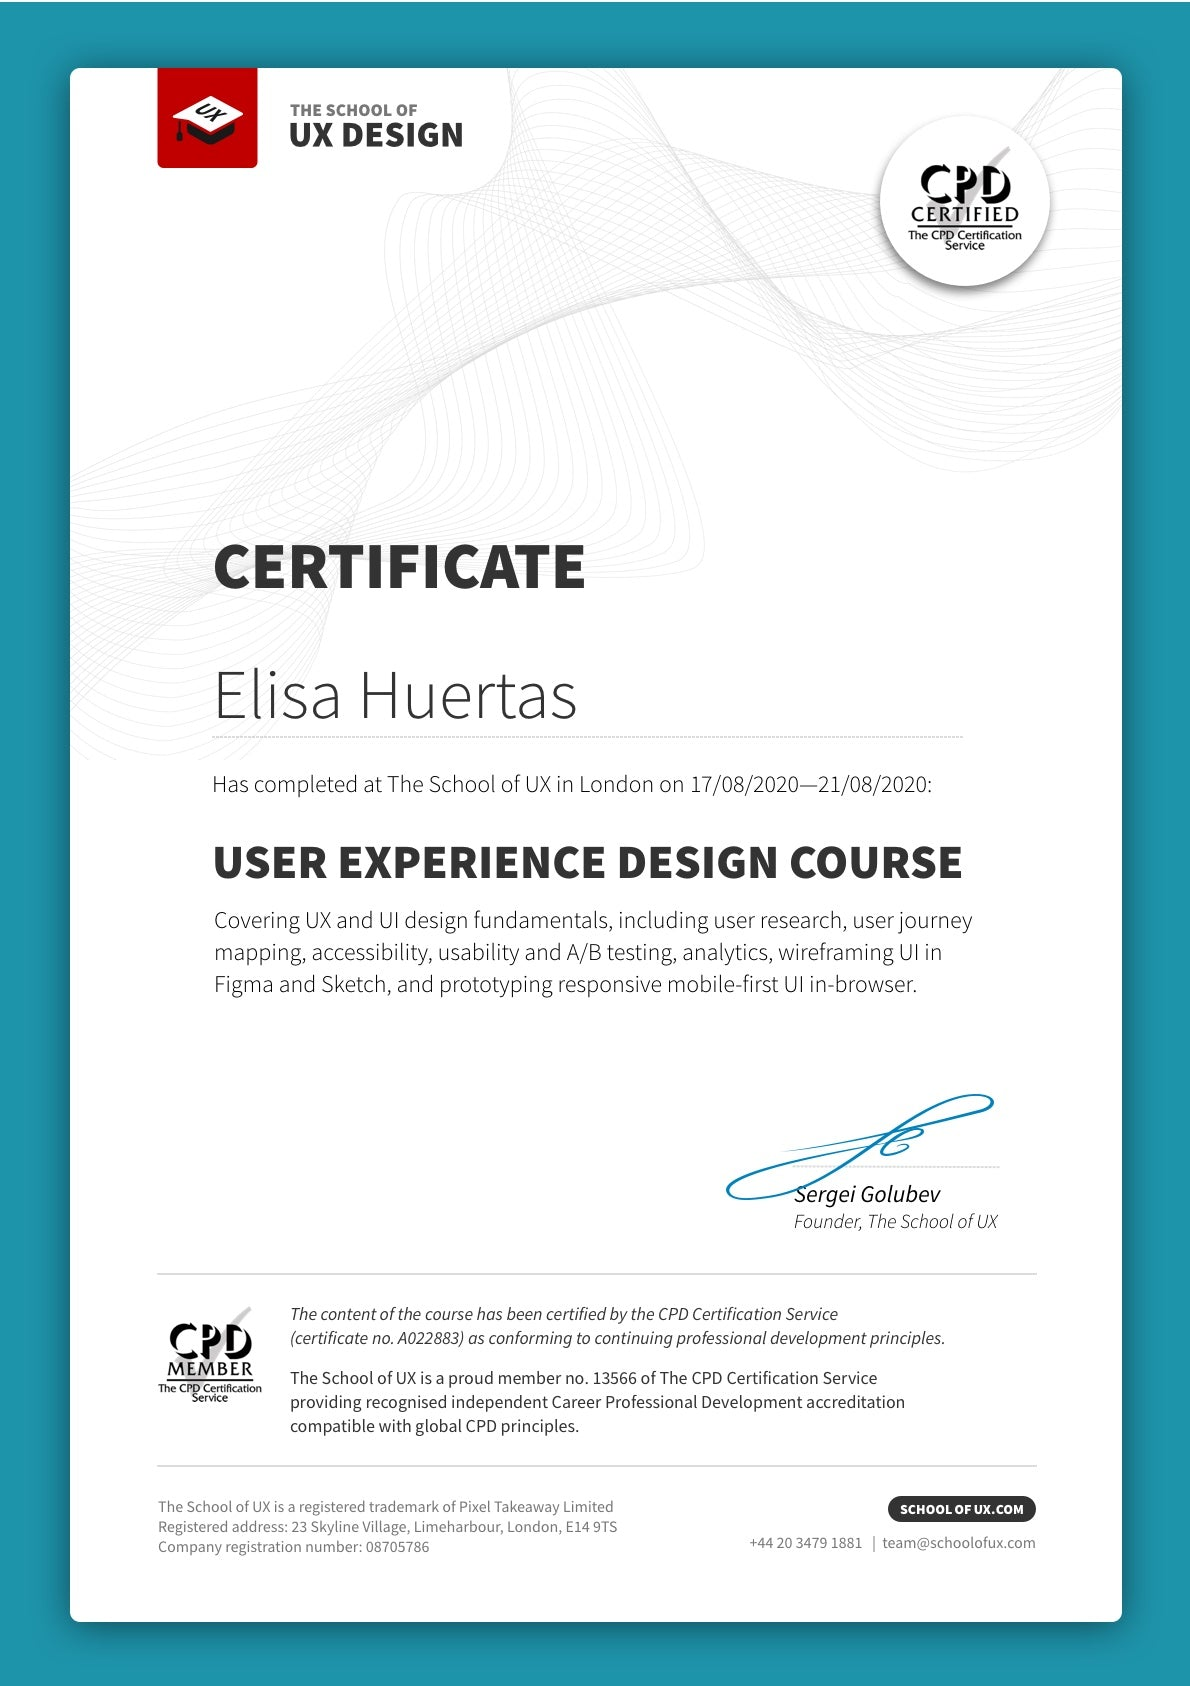 The School Of Ux Certified Design Courses 159 1 5 Days